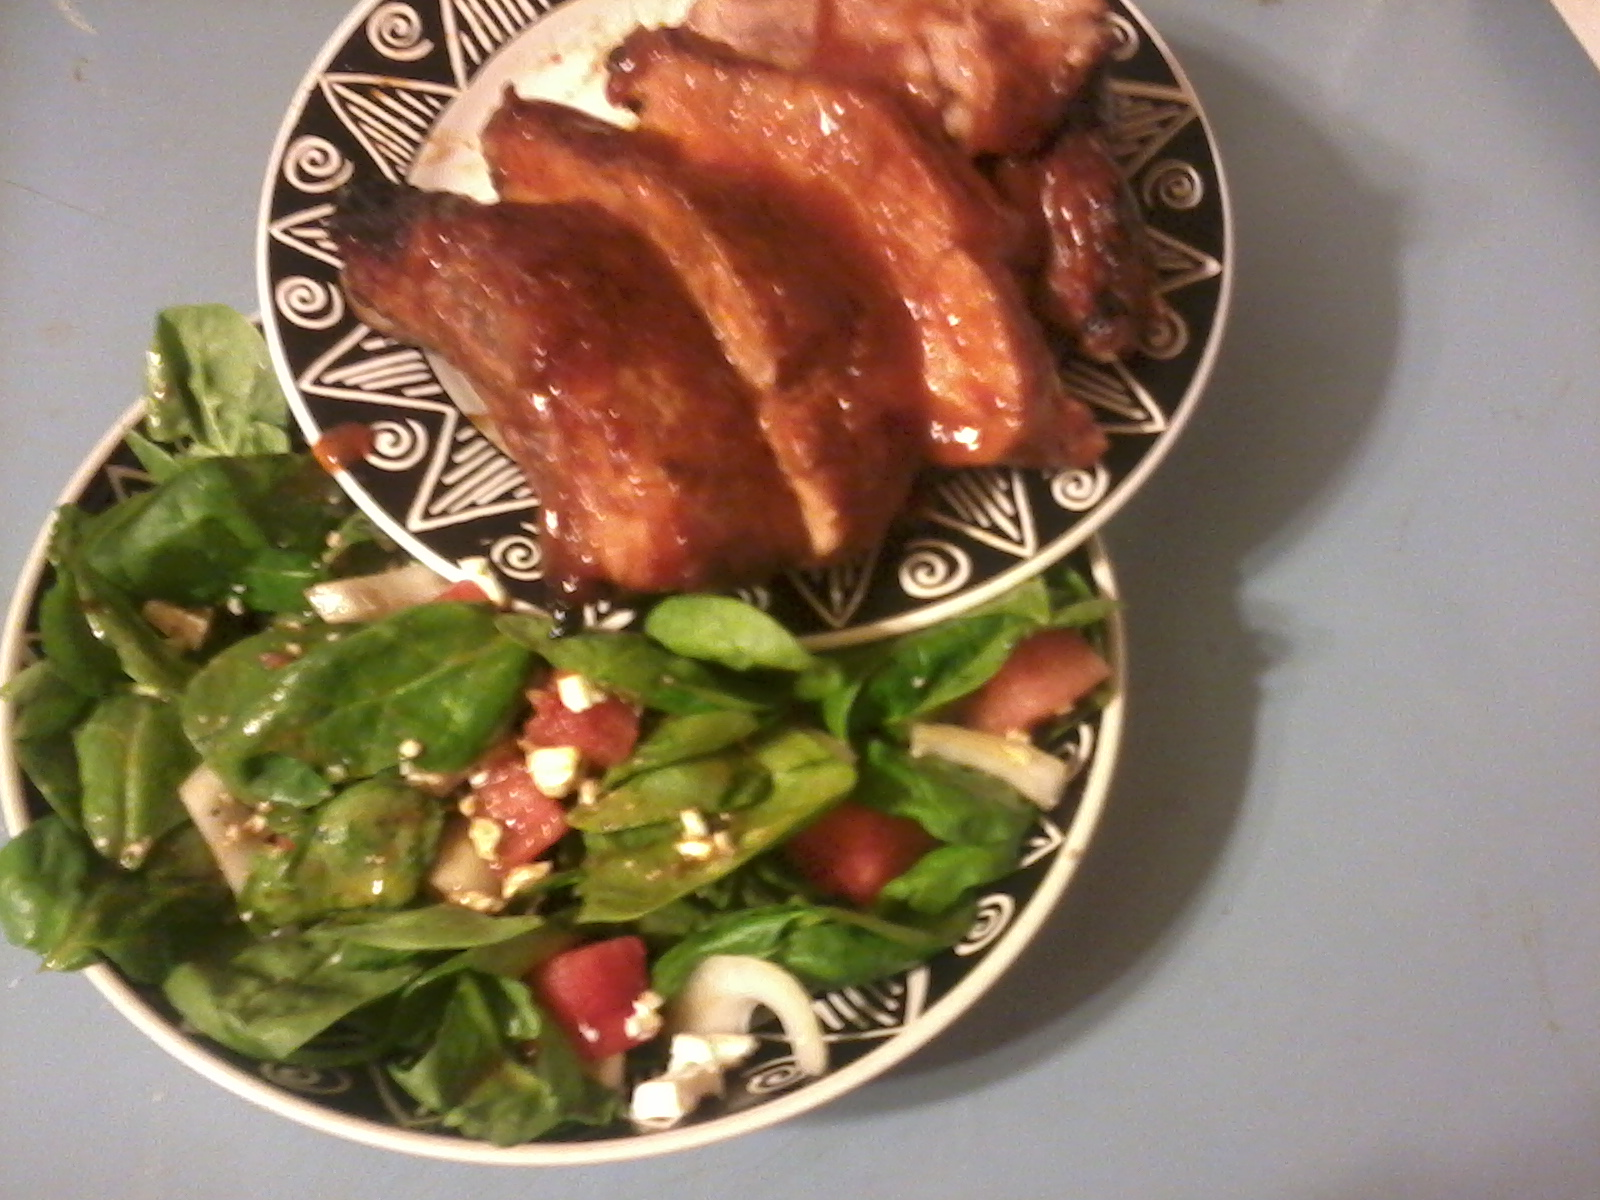 bbq ribs and watermelon salad